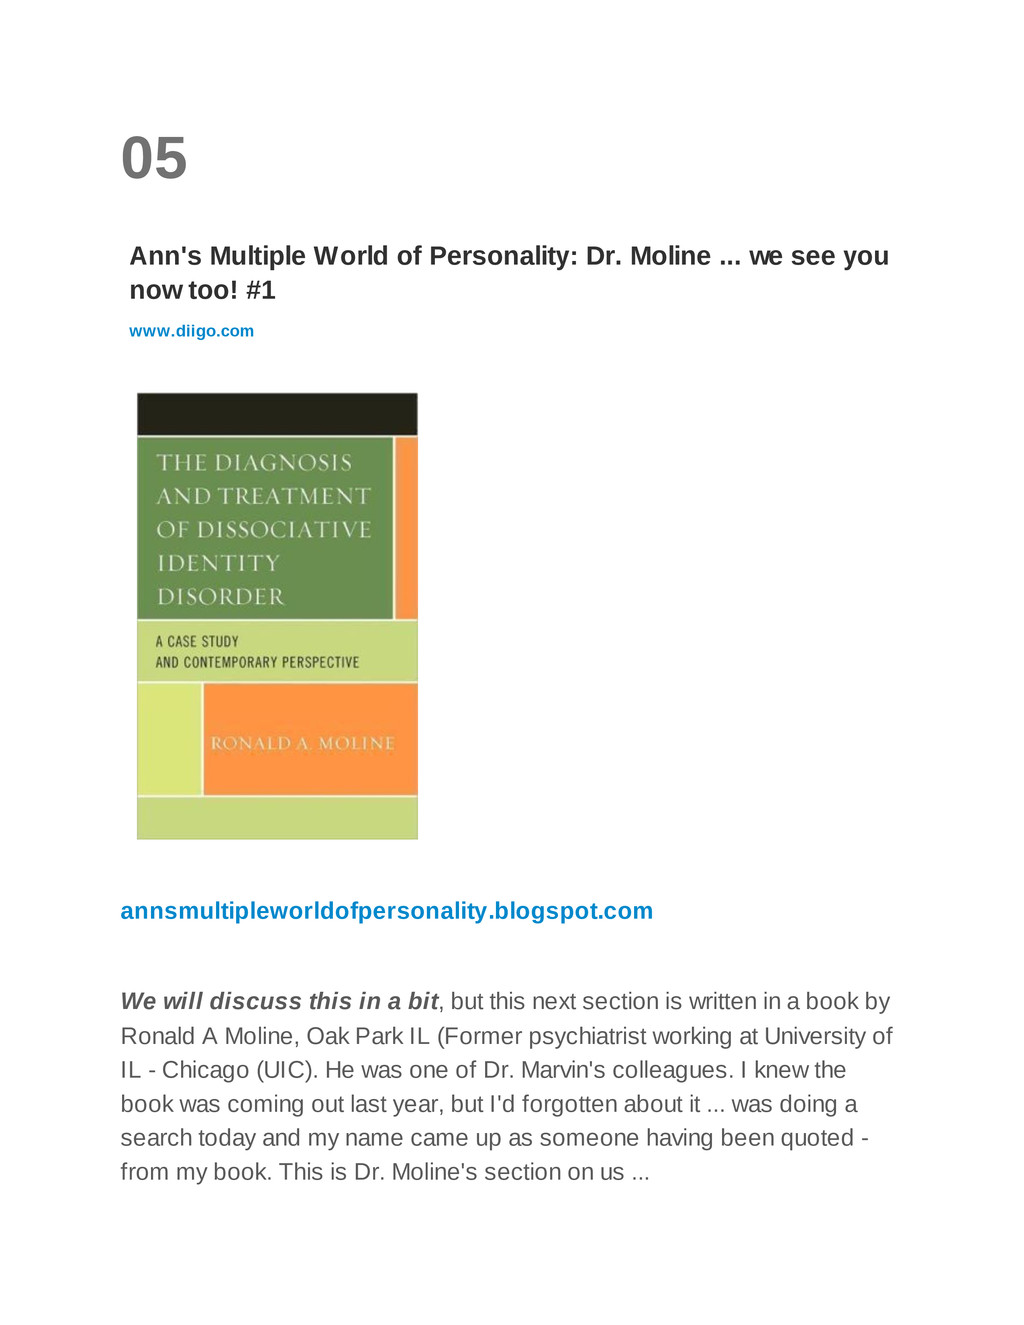 05 Ann's Multiple World of Personality: Dr. Mol...